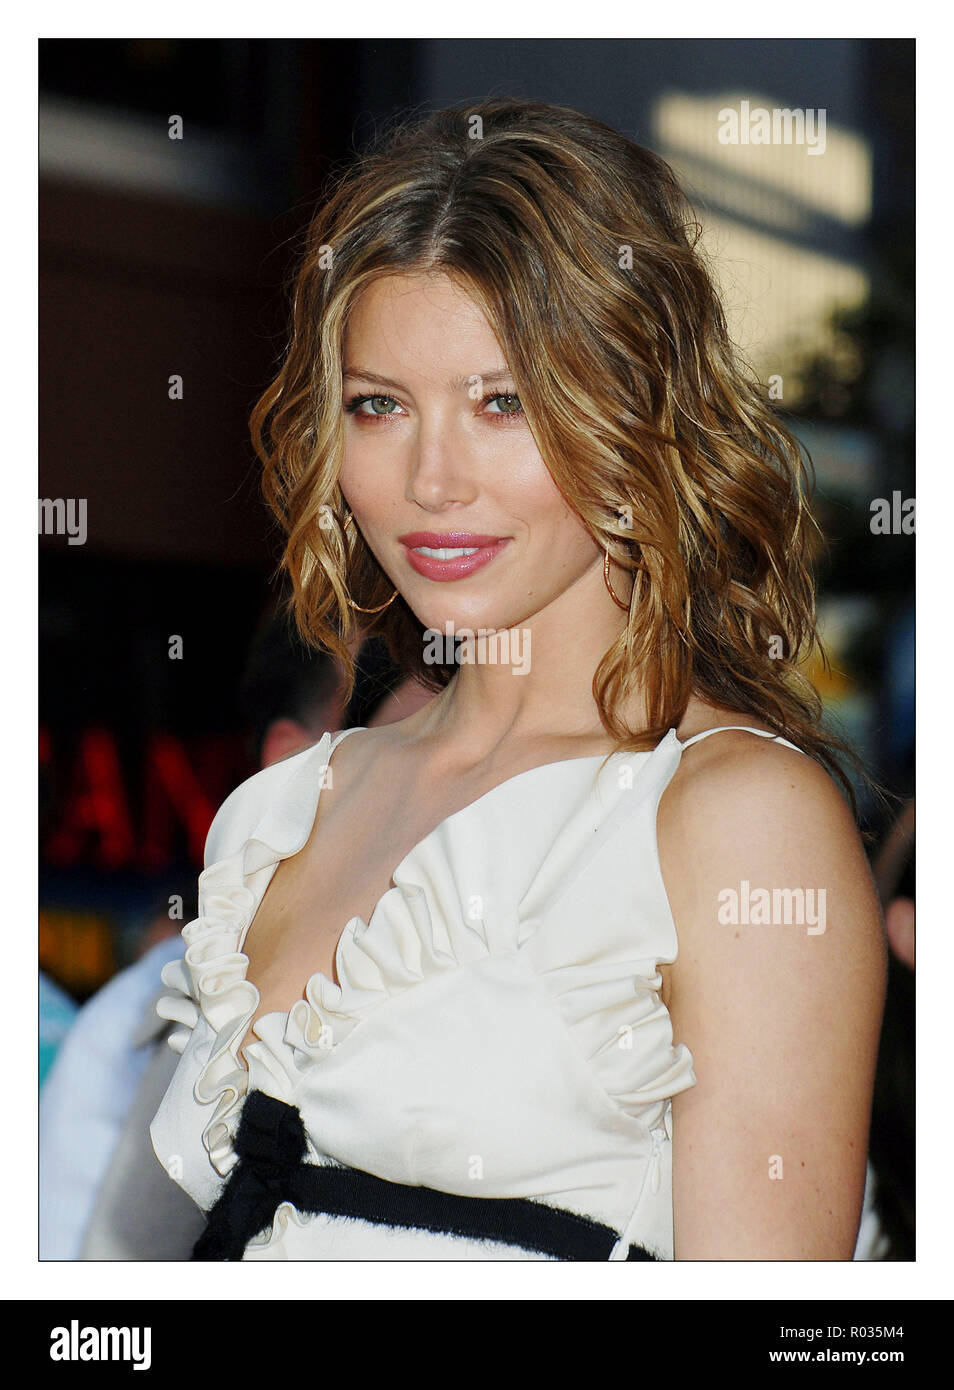 Jessica Biel  arriving at the 'I Pronounce YOU CHUCK & LARRY Premiere at the gibson Amphitheatre in Los Angeles.  headshot eye contact smile01_BielJessica_01A Red Carpet Event, Vertical, USA, Film Industry, Celebrities,  Photography, Bestof, Arts Culture and Entertainment, Topix Celebrities fashion /  Vertical, Best of, Event in Hollywood Life - California,  Red Carpet and backstage, USA, Film Industry, Celebrities,  movie celebrities, TV celebrities, Music celebrities, Photography, Bestof, Arts Culture and Entertainment,  Topix, headshot, vertical, one person,, from the year , 2007, inquiry t - Stock Image